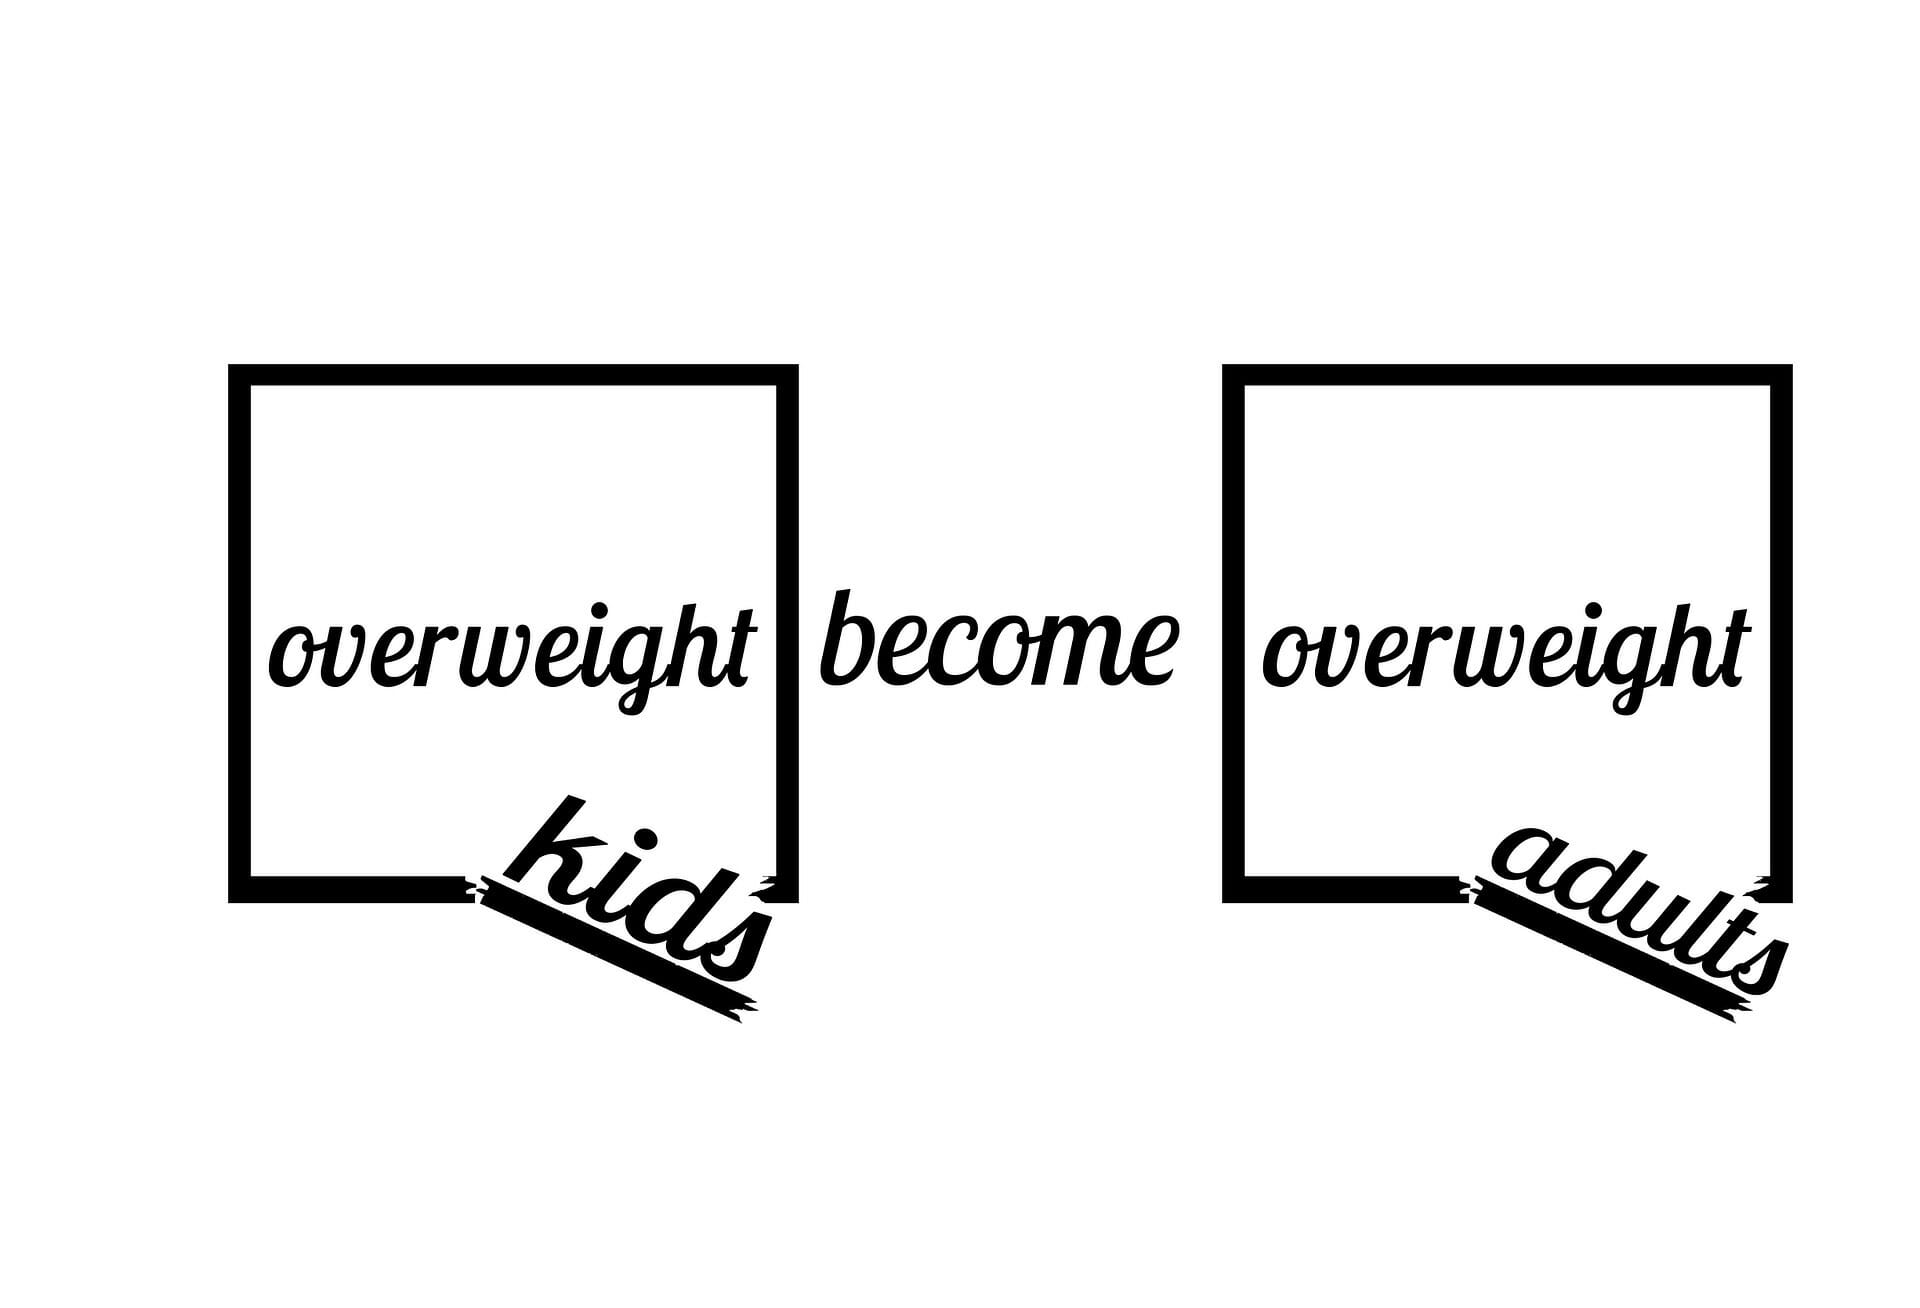 How to Promote Weight Loss in Overweight Kids? Fighting Childhood Obesity: 5 Tips You Need to Know